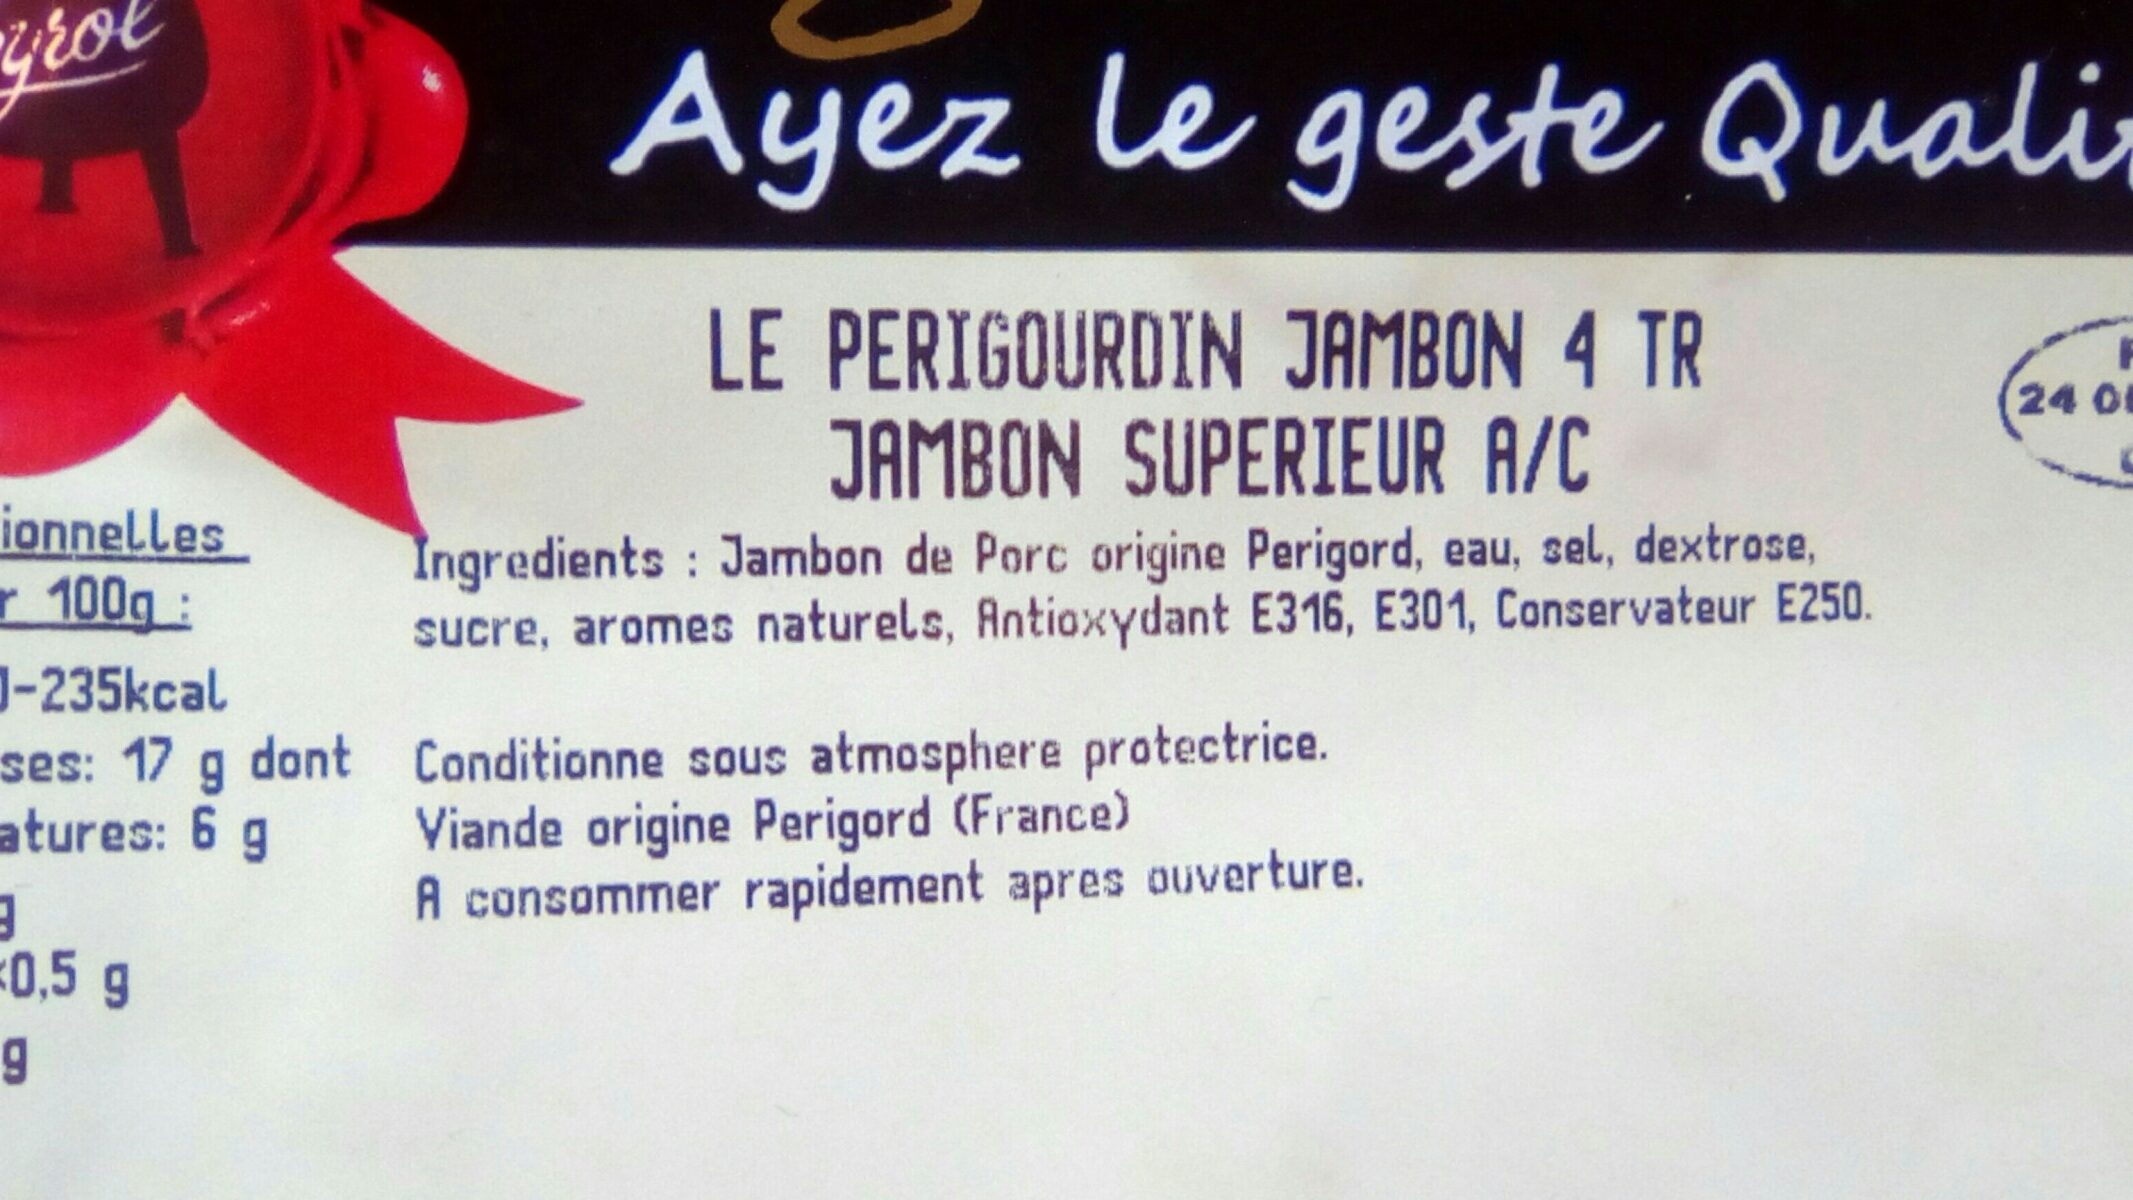 Les episales de l'île de Ré - Ingredients